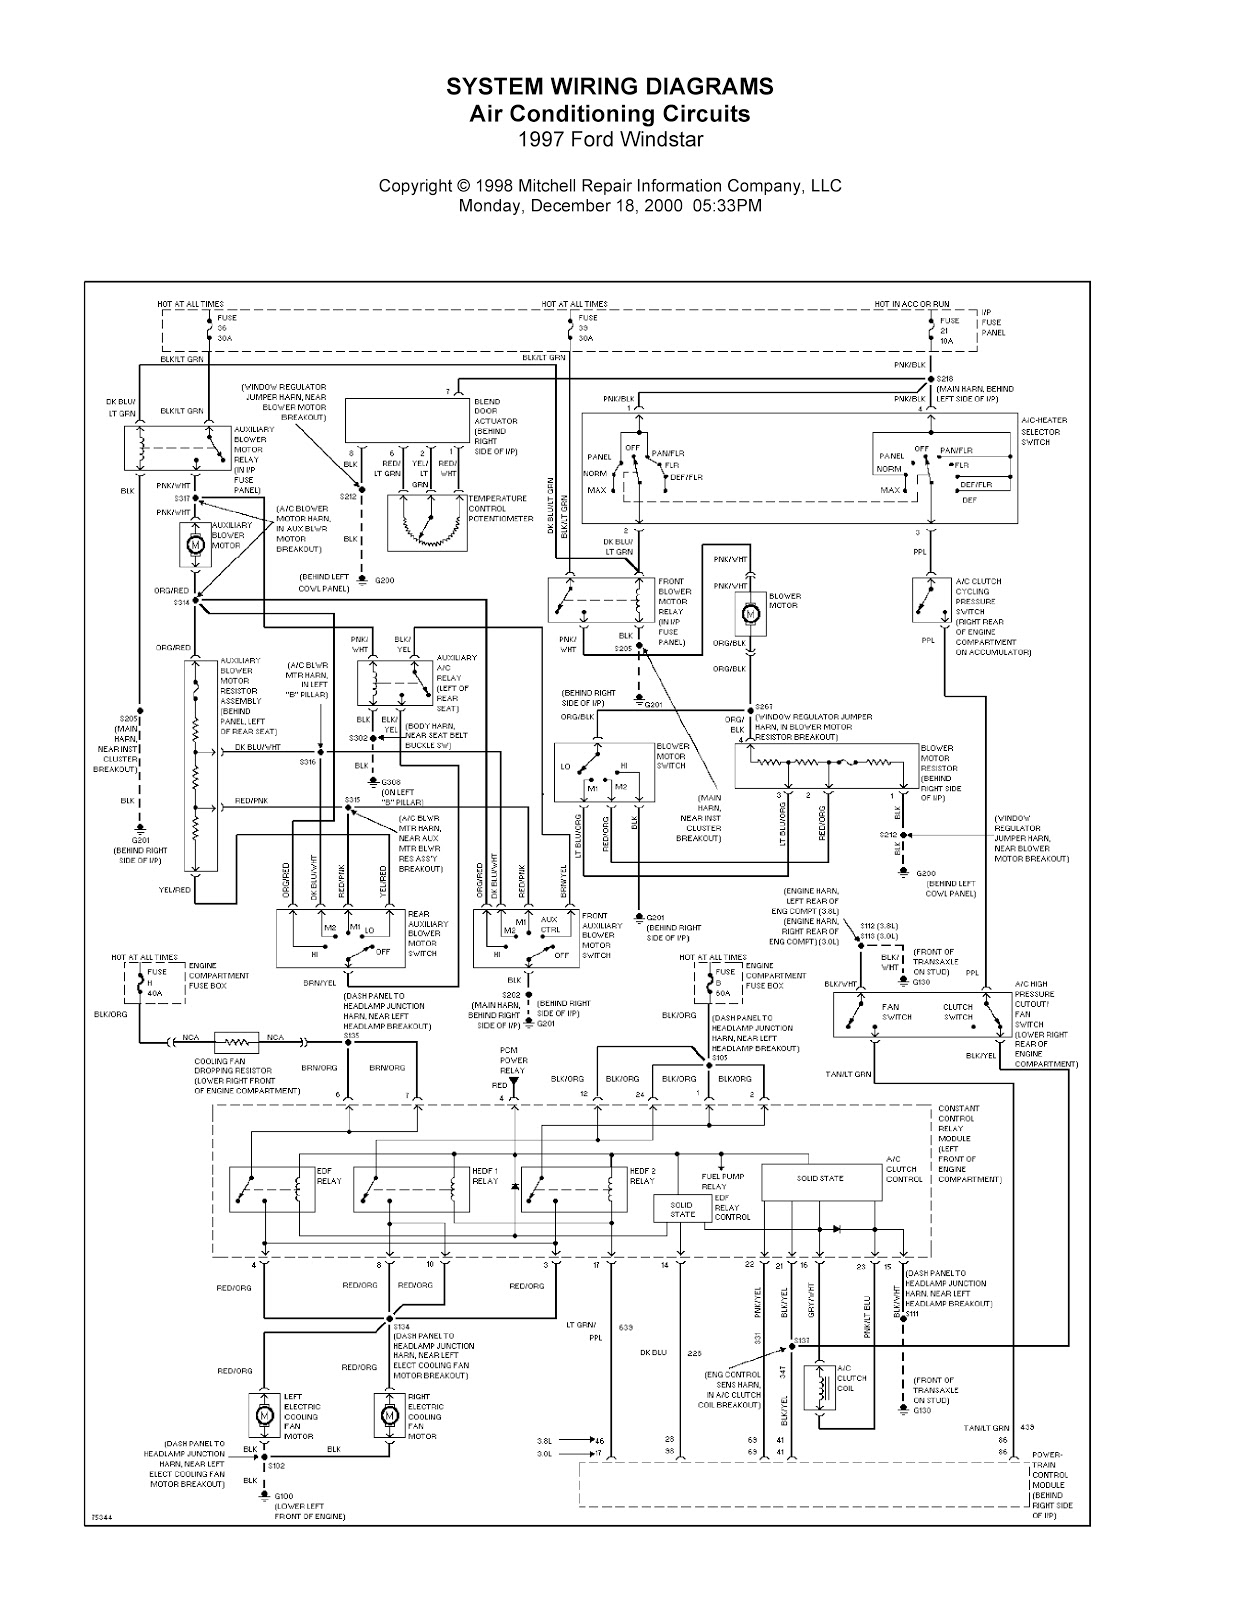 0001 1997 ford windstar complete system wiring diagrams wiring 1999 ford explorer rear wiper wiring diagram at aneh.co